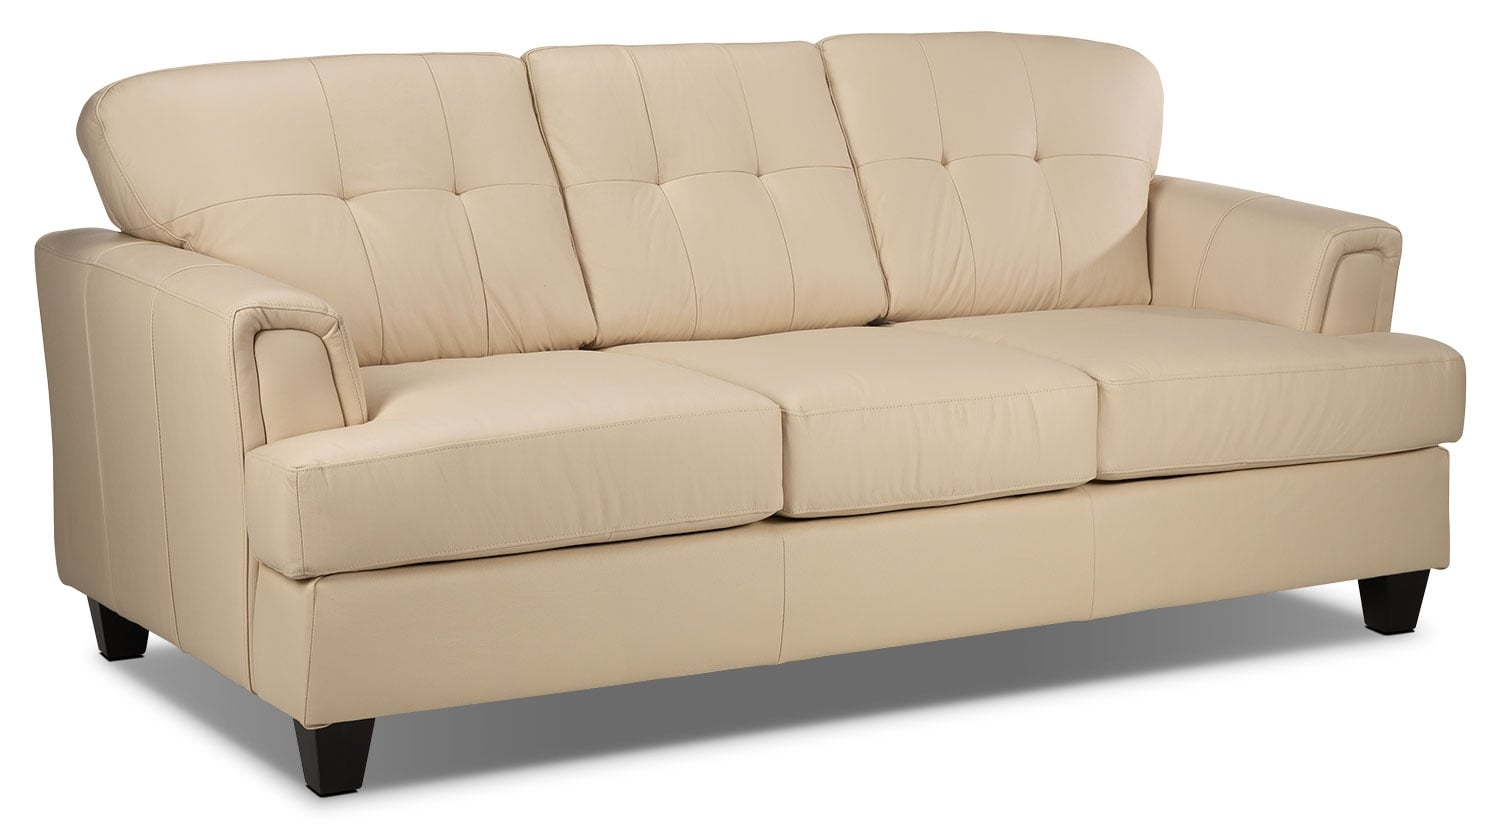 Living Room Furniture - Spencer Sofa - Light Beige